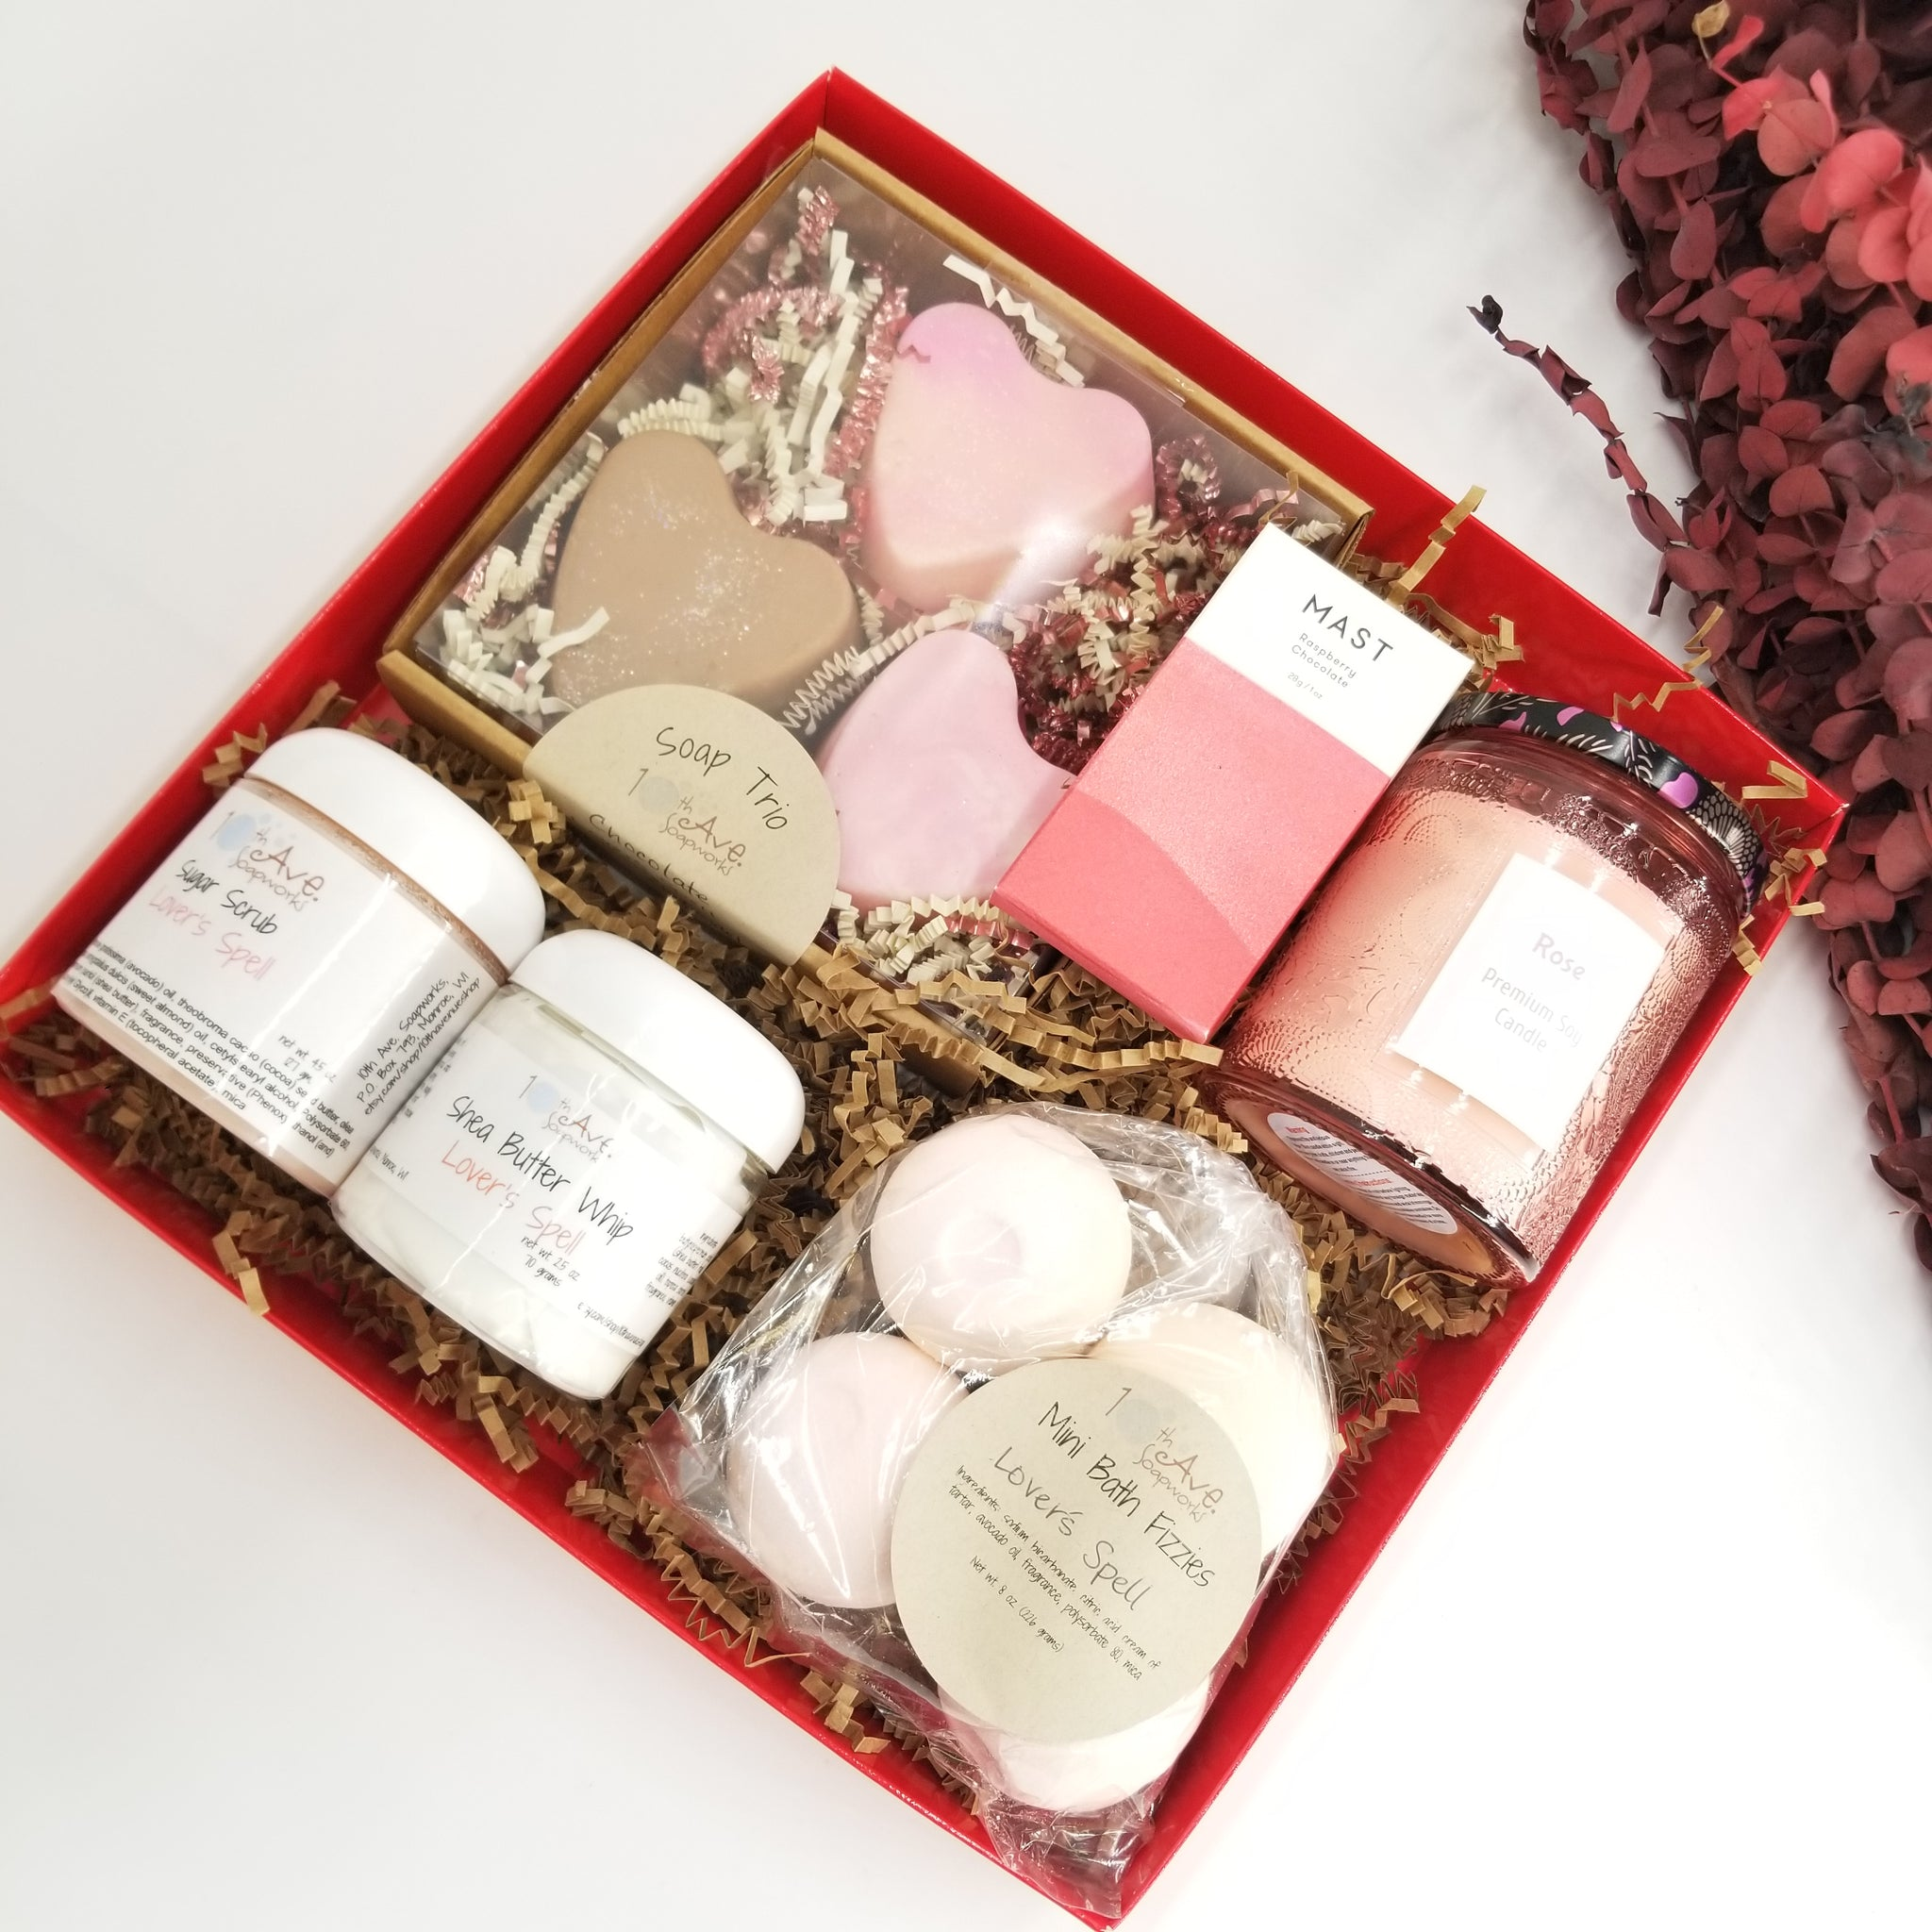 The ultimate Valentine's day spa gift